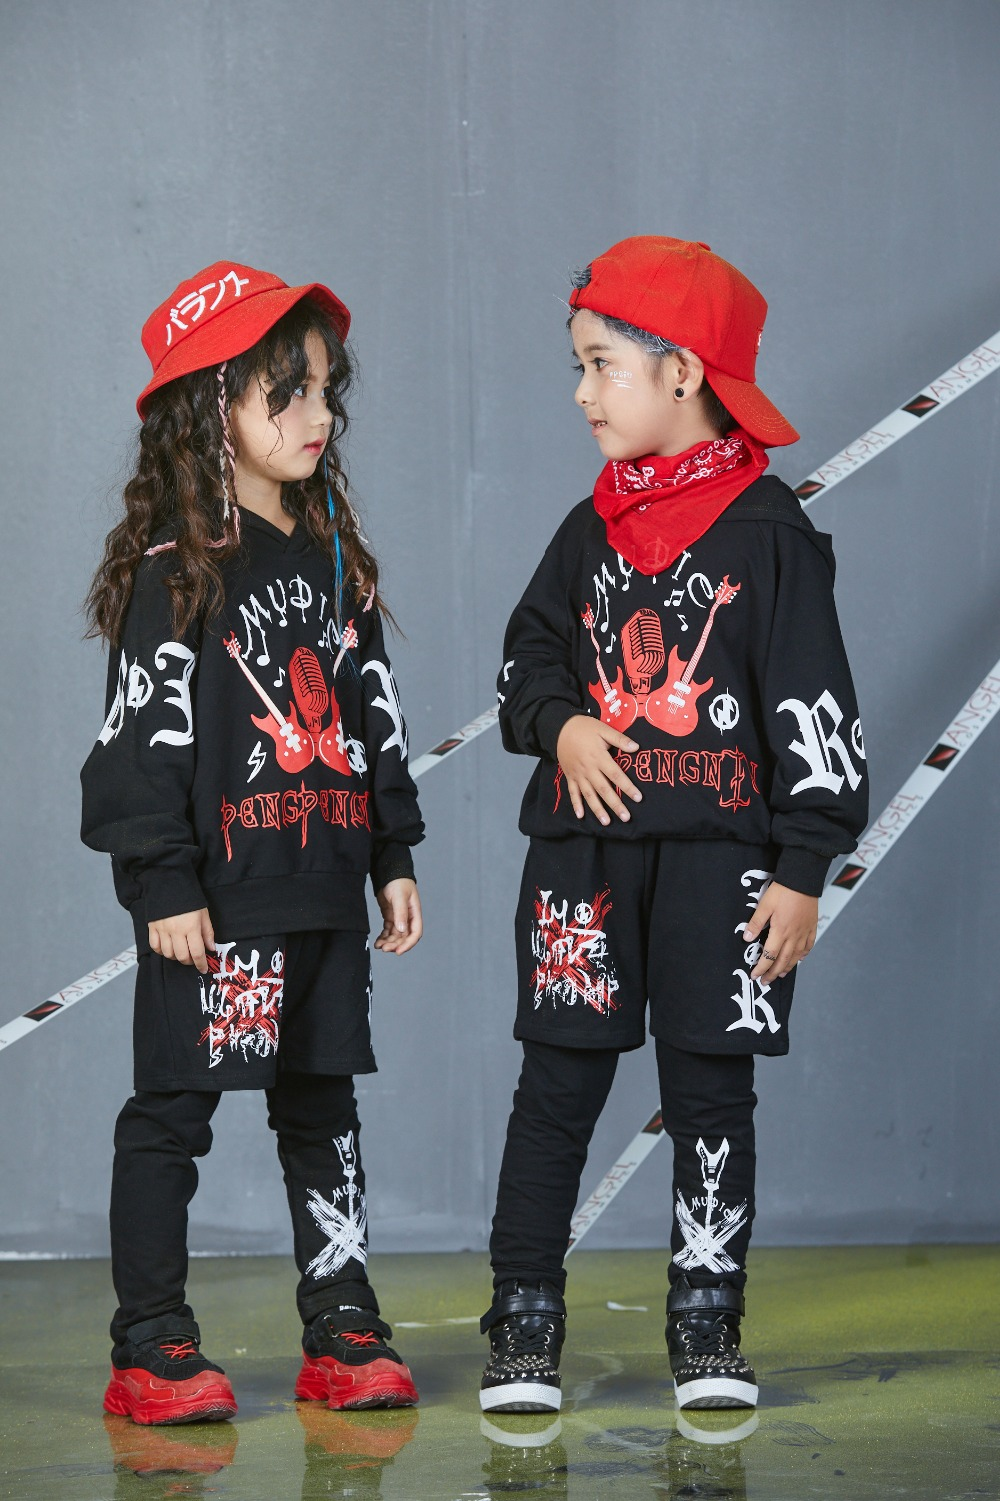 Autumn Spring Kids Street Dance Clothes Sets Fashion Hip Hop Clothing 2019 Brand High Quality Sport Suit for Teenage Boys Girl (20) -